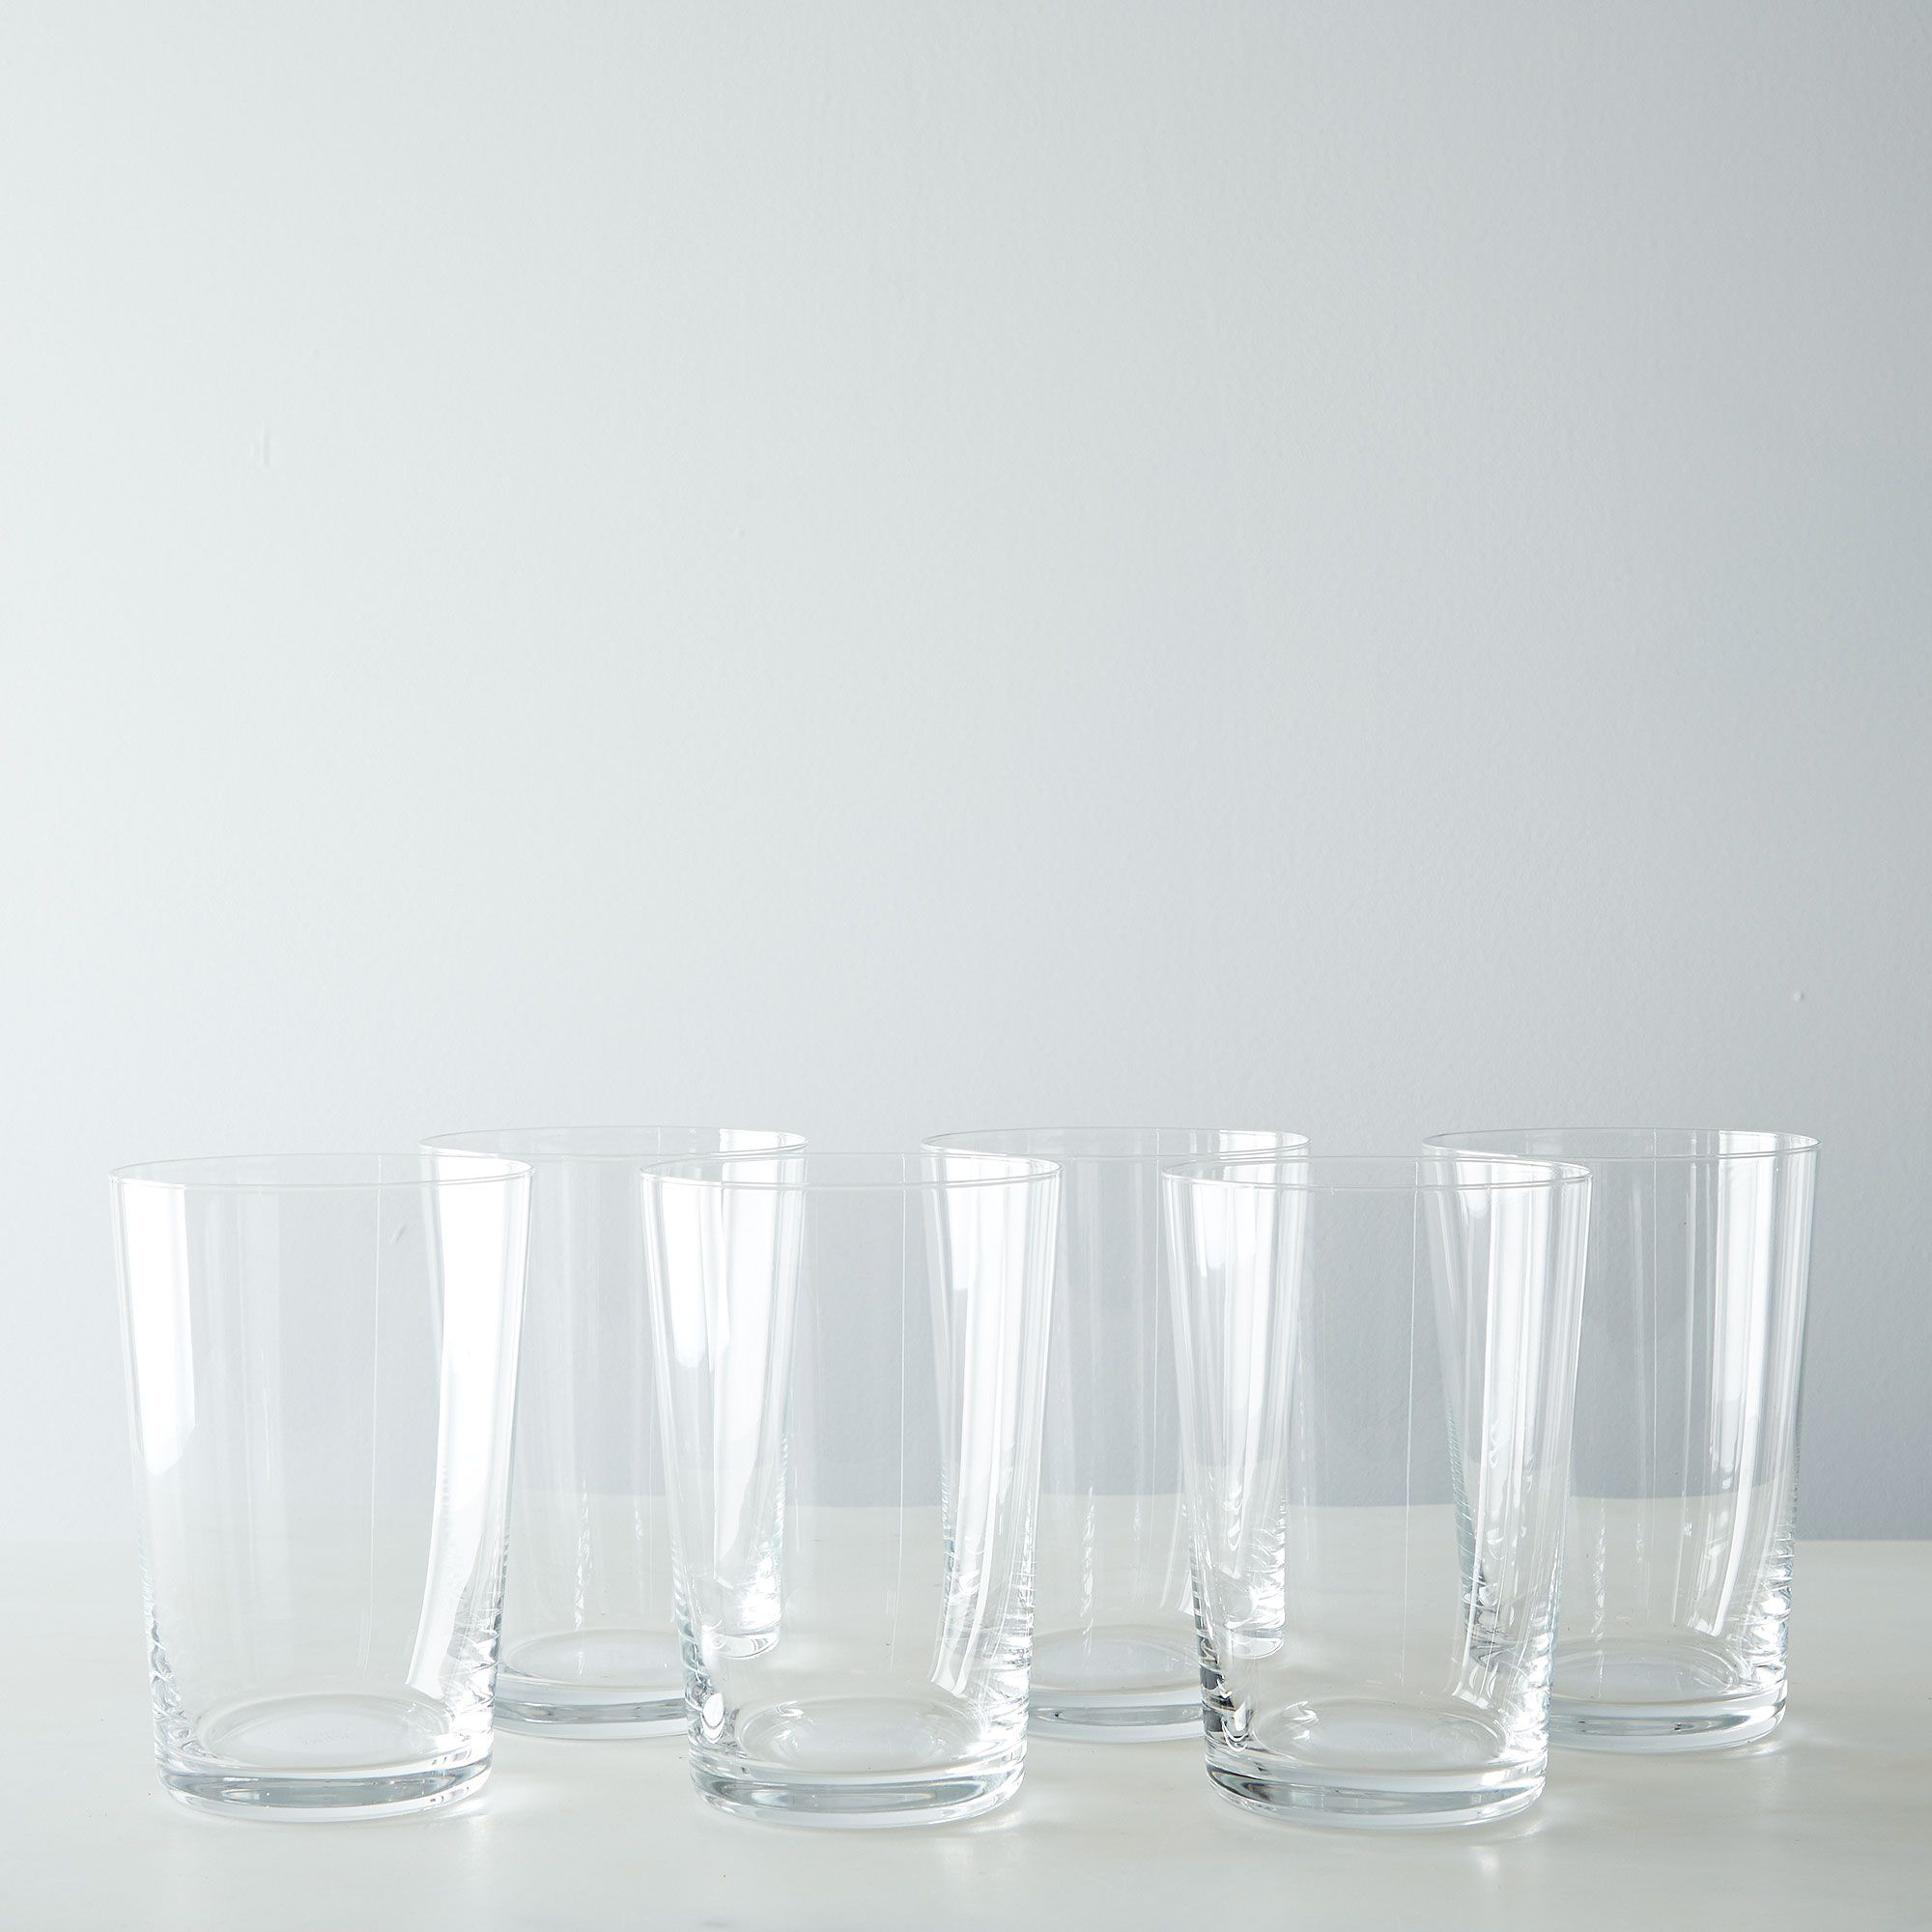 C421e527-3866-4645-98be-e1b5509ffebb--2014-1017_fortessa_basic-bar-glasses-001